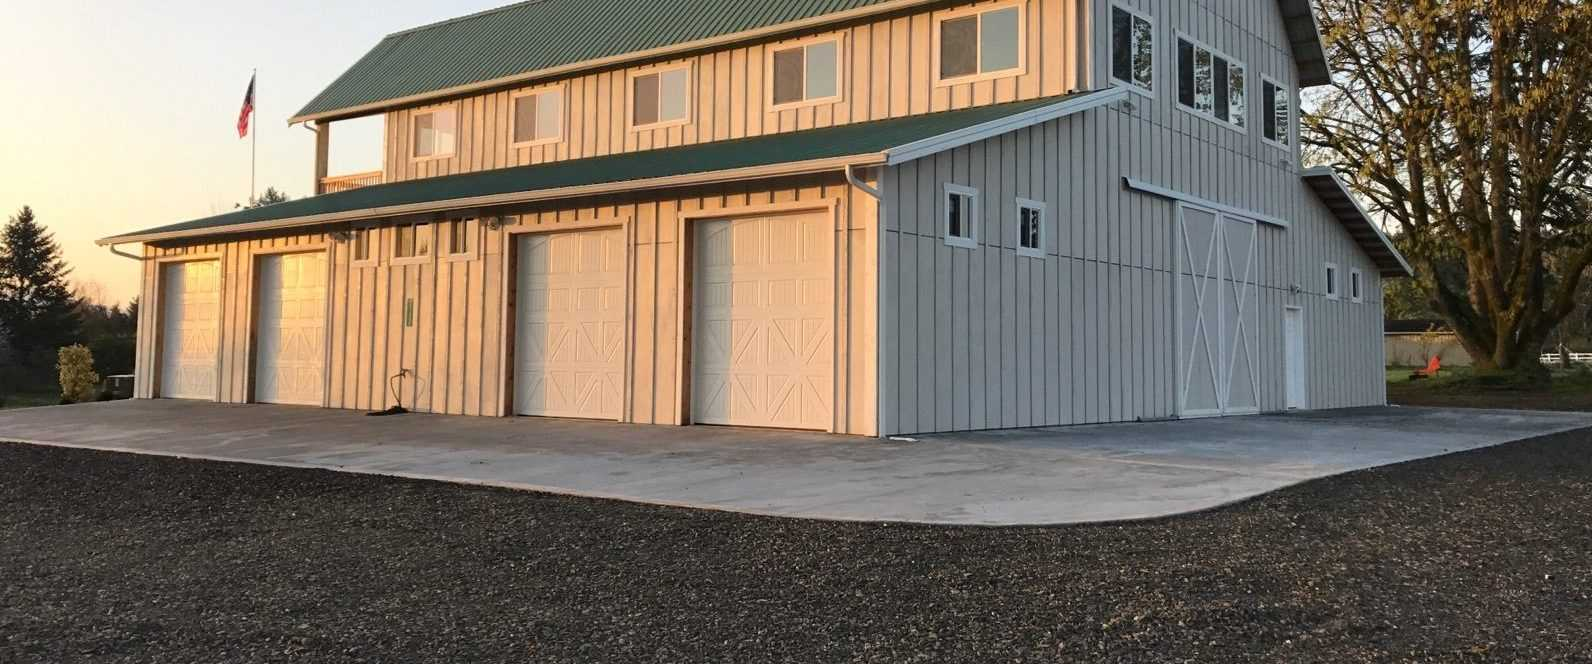 Home | Pole Barn Builder specializing in Post Frame Buildings